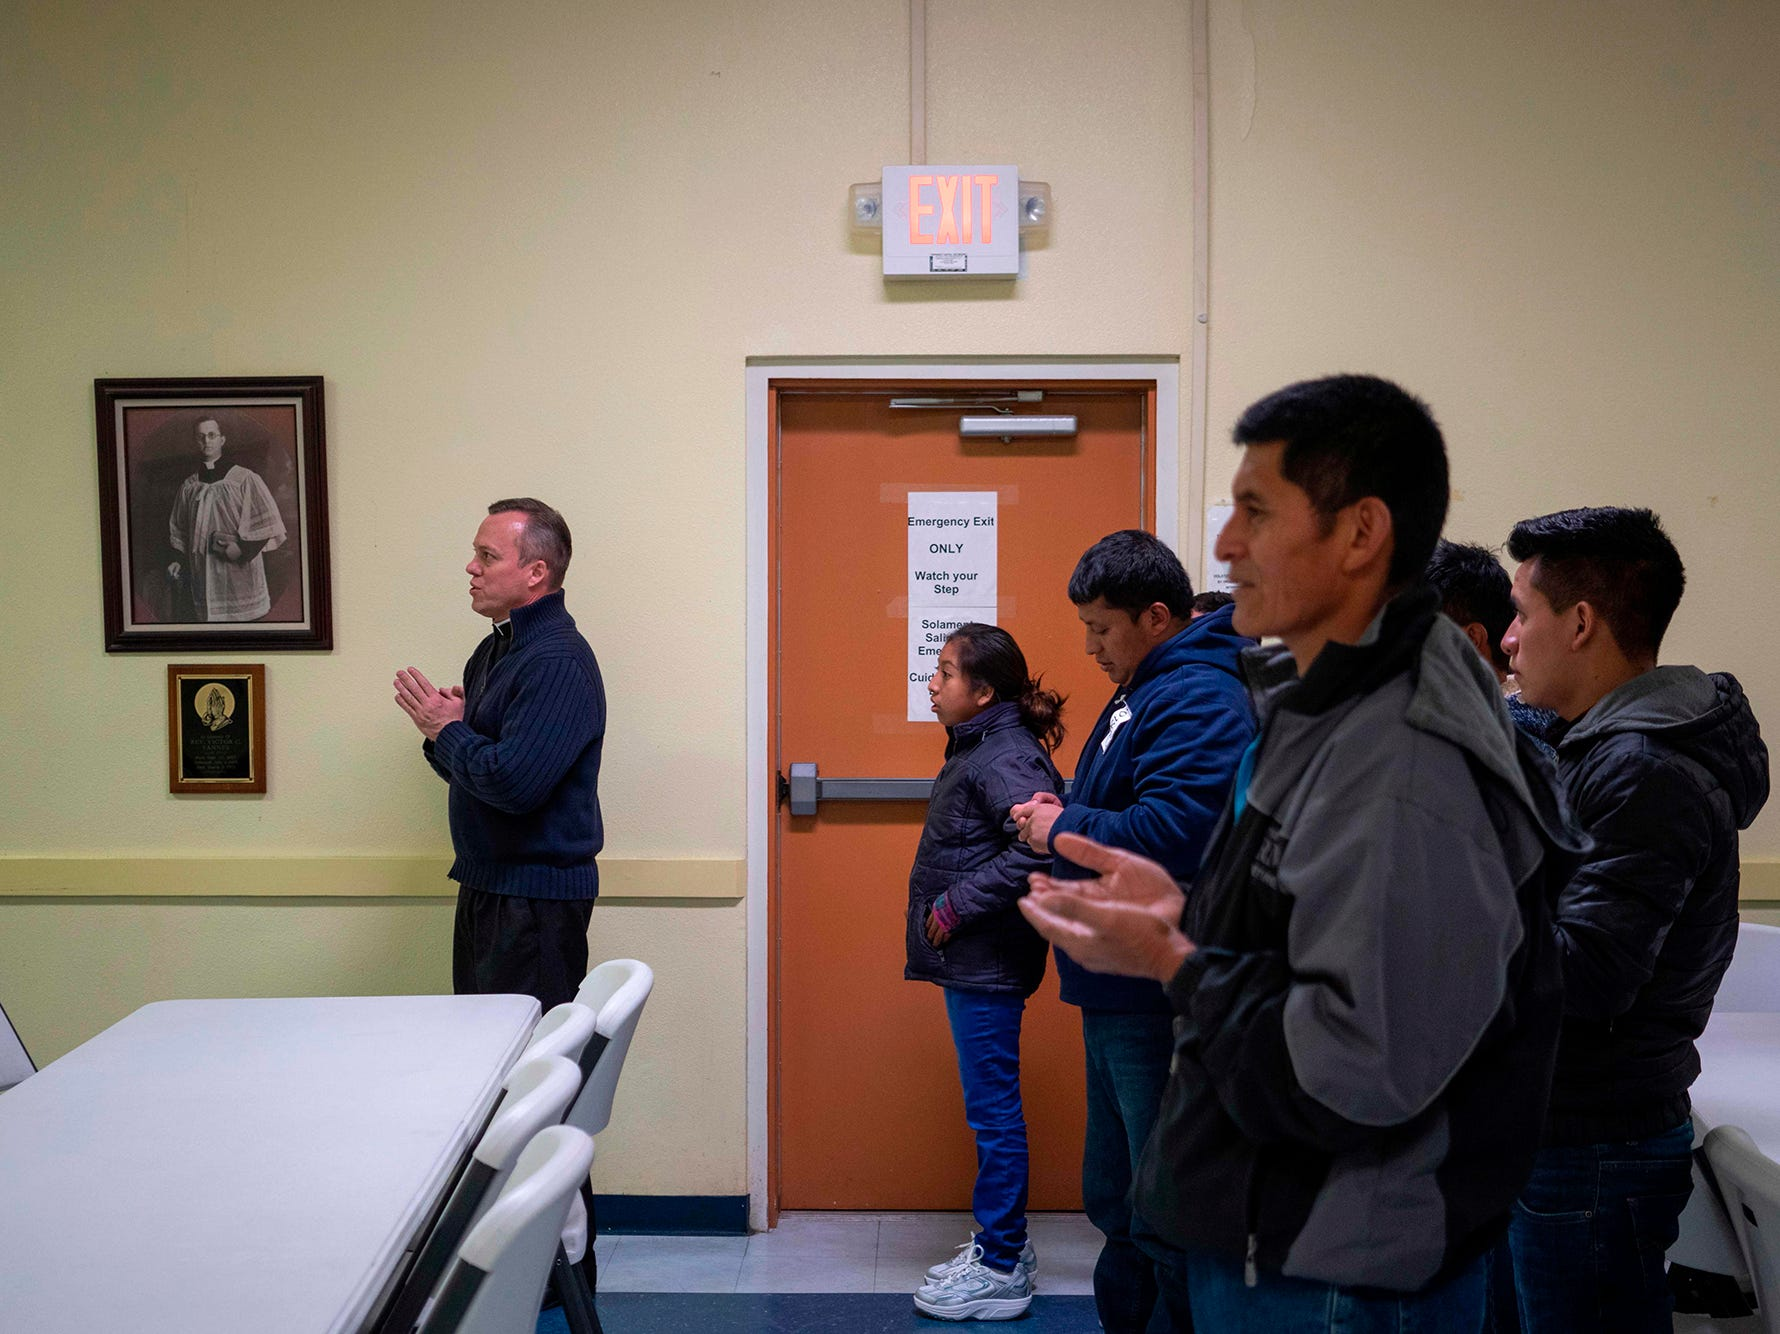 """Father Christopher Williams, left, says a blessing in the church hall of the Basilica of San Albino with a group of about 20 Central American migrants who were released by Immigration and Customs Enforcement that day in Mesilla, New Mexico on Jan. 2, 2019.  About 20 migrants were hosted by the church for a night before they would depart to their families in different parts of the United States. San Albino is taking part in a program called """"Project Oak Tree"""" which provides hospitality to migrants the day they are released by Immigration and Customs Enforcement. Without such shelters like this and those run by Annunciation house in El Paso, they would be left at a Greyhound Station in downtown El Paso, with no food, shelter or means of communication with their families."""